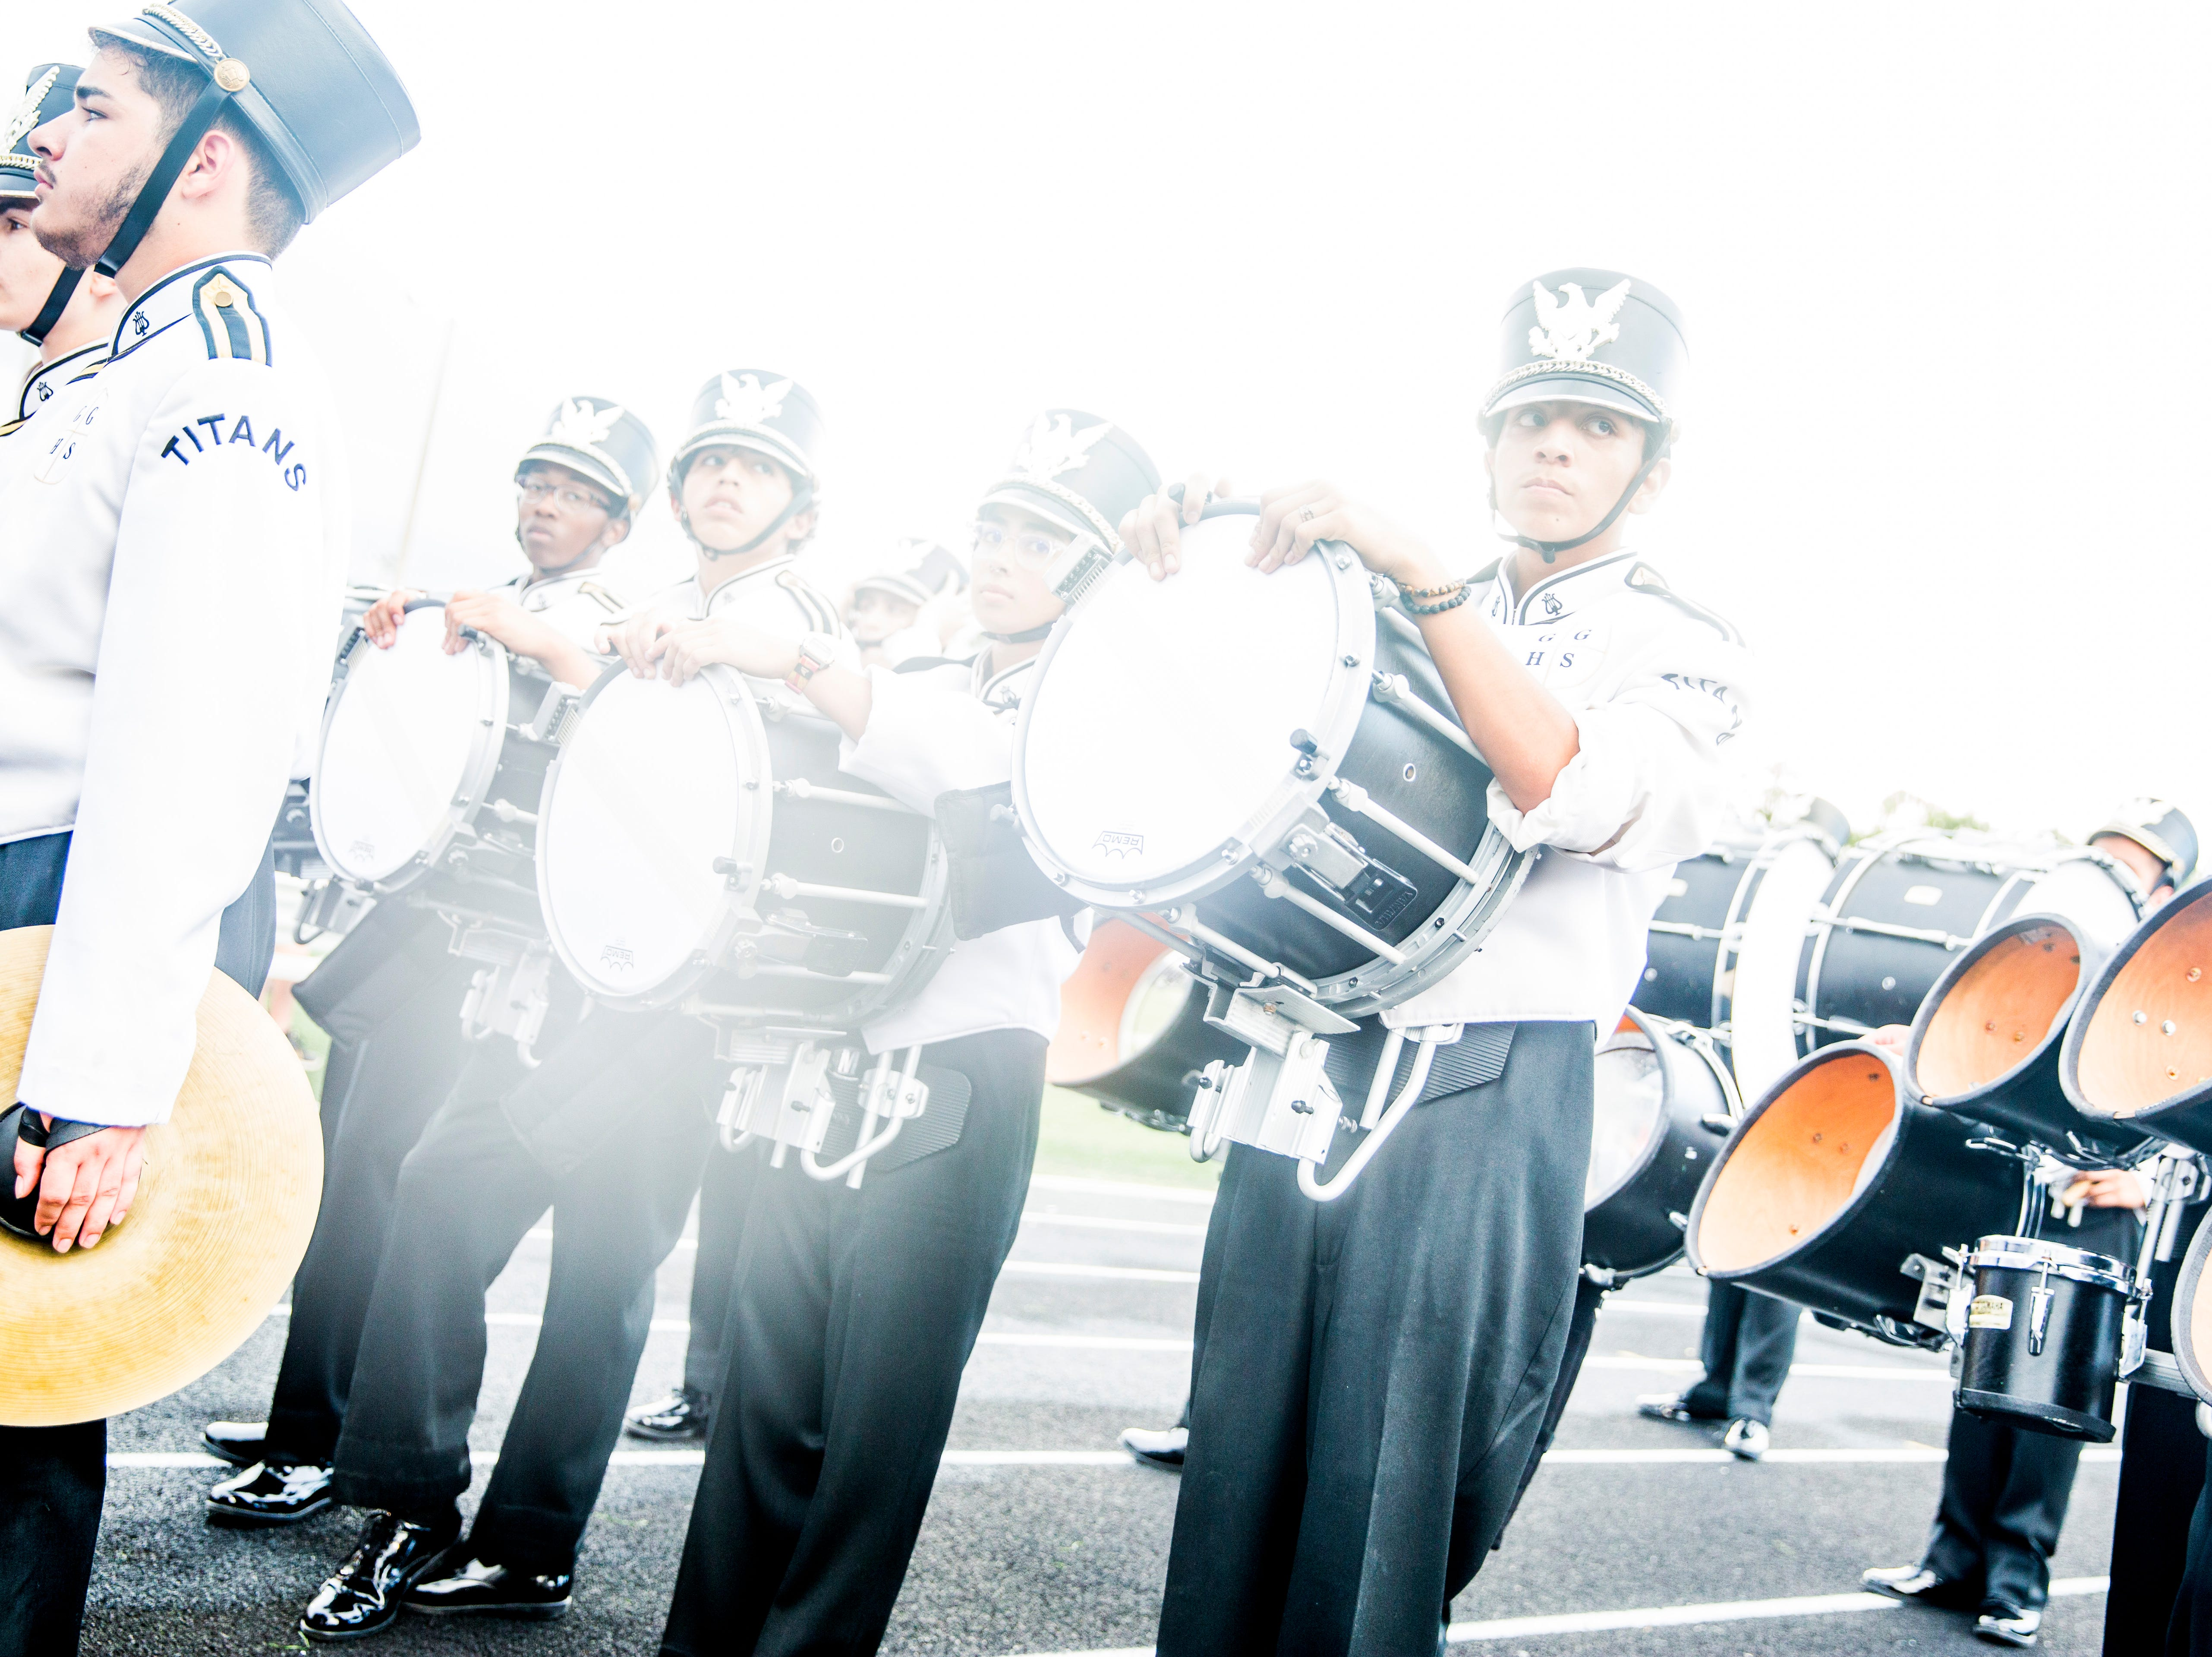 Golden Gate marching band members leave the field before the game against Immokalee at Golden Gate High School on Friday, Aug. 24, 2018.